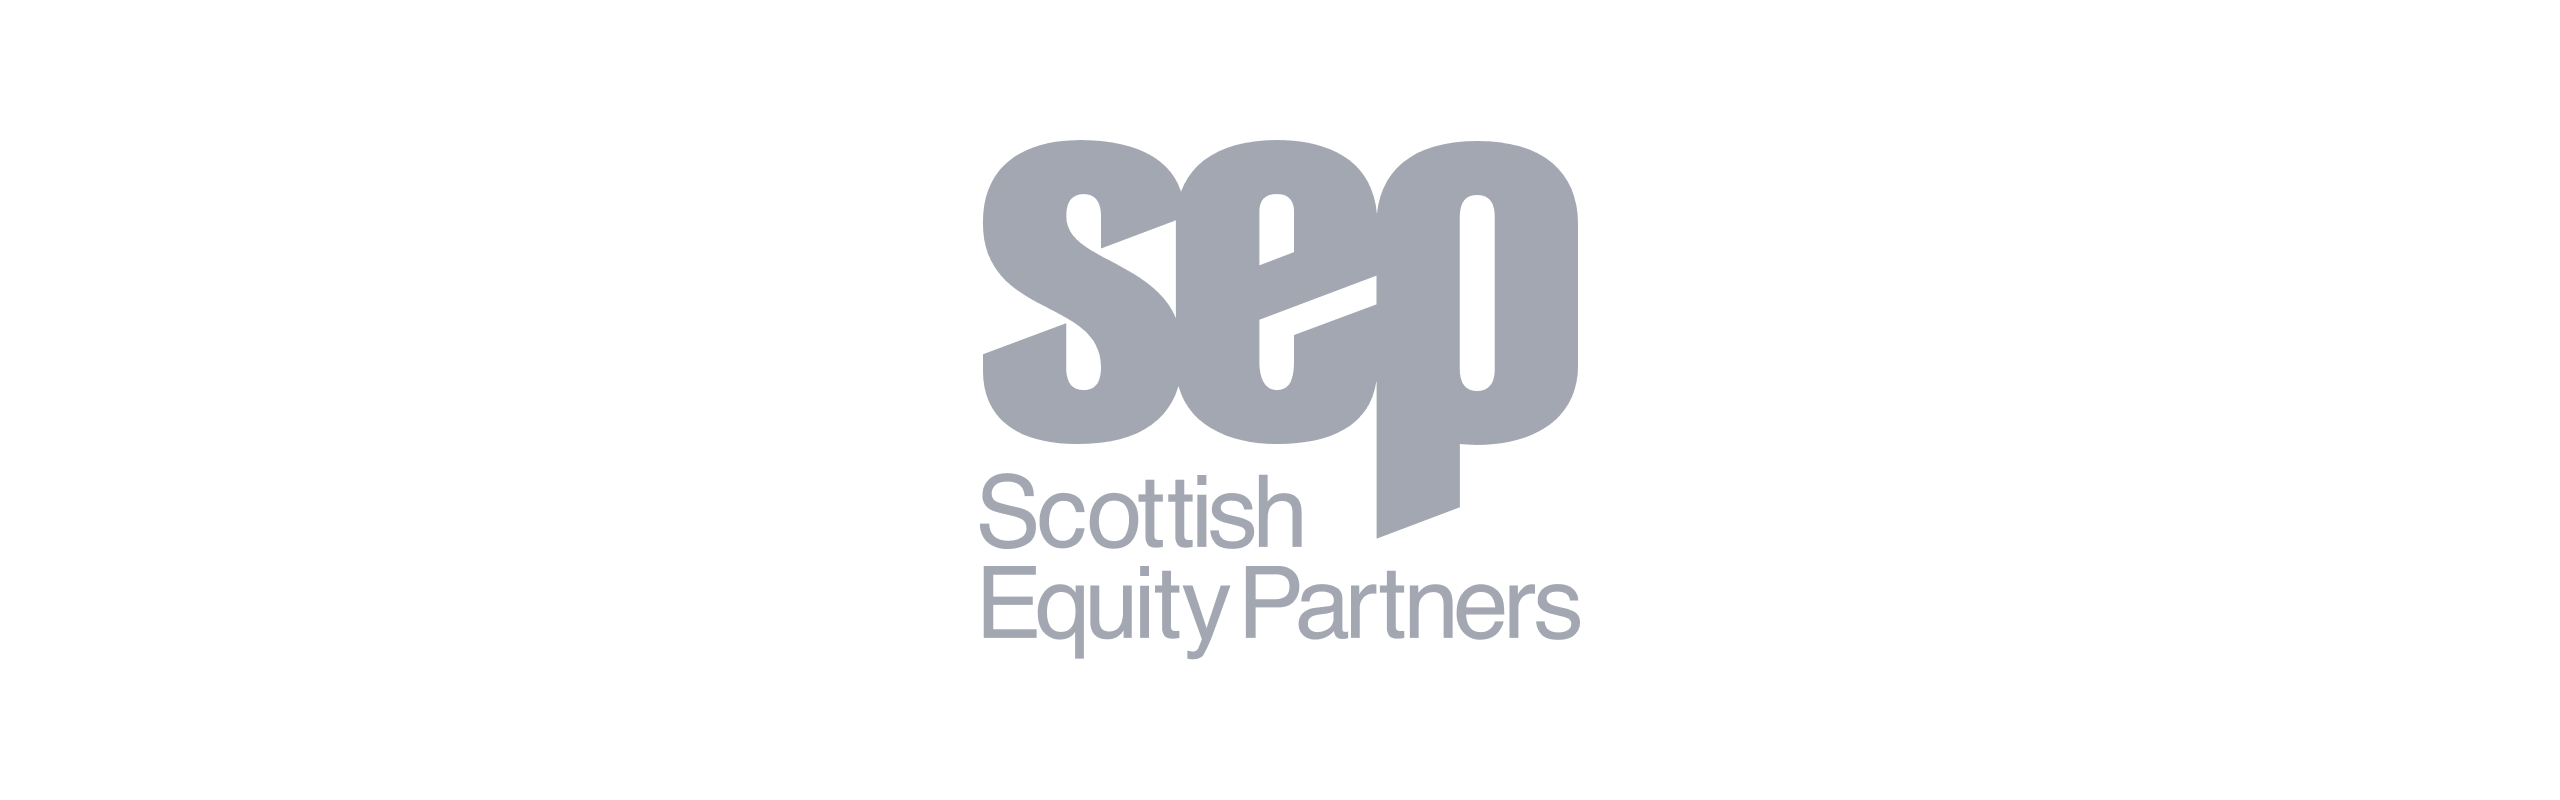 Technology & product due diligence | Code & Co. advises SCOTTISH EQUITY PARTNERS (logo shown)